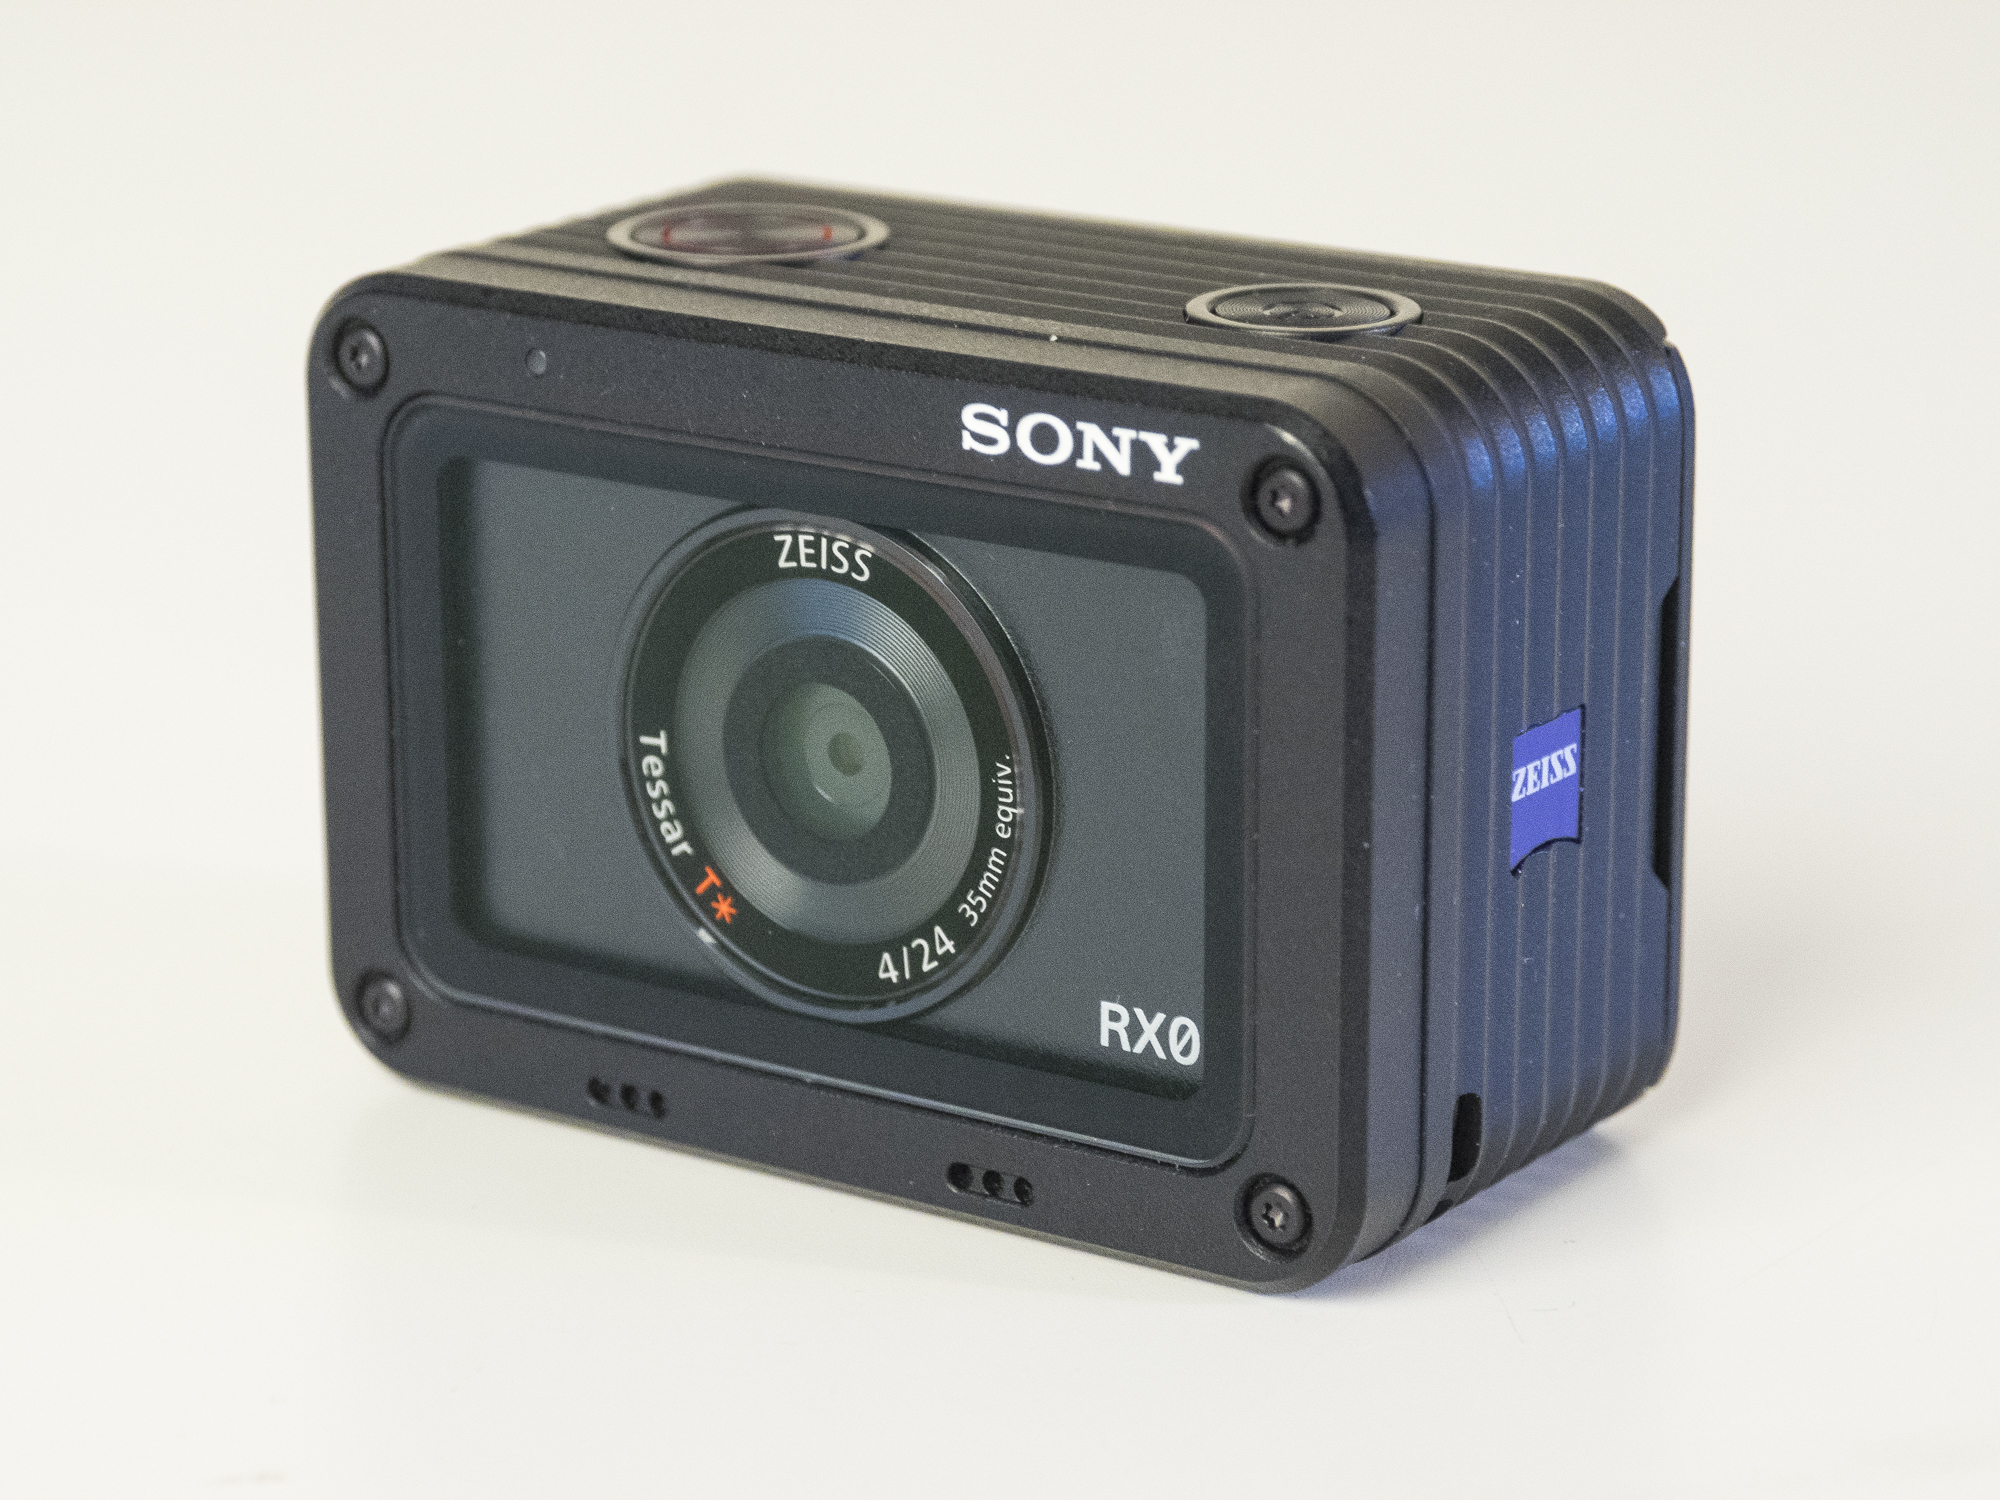 sony rxo product images 19.jpg